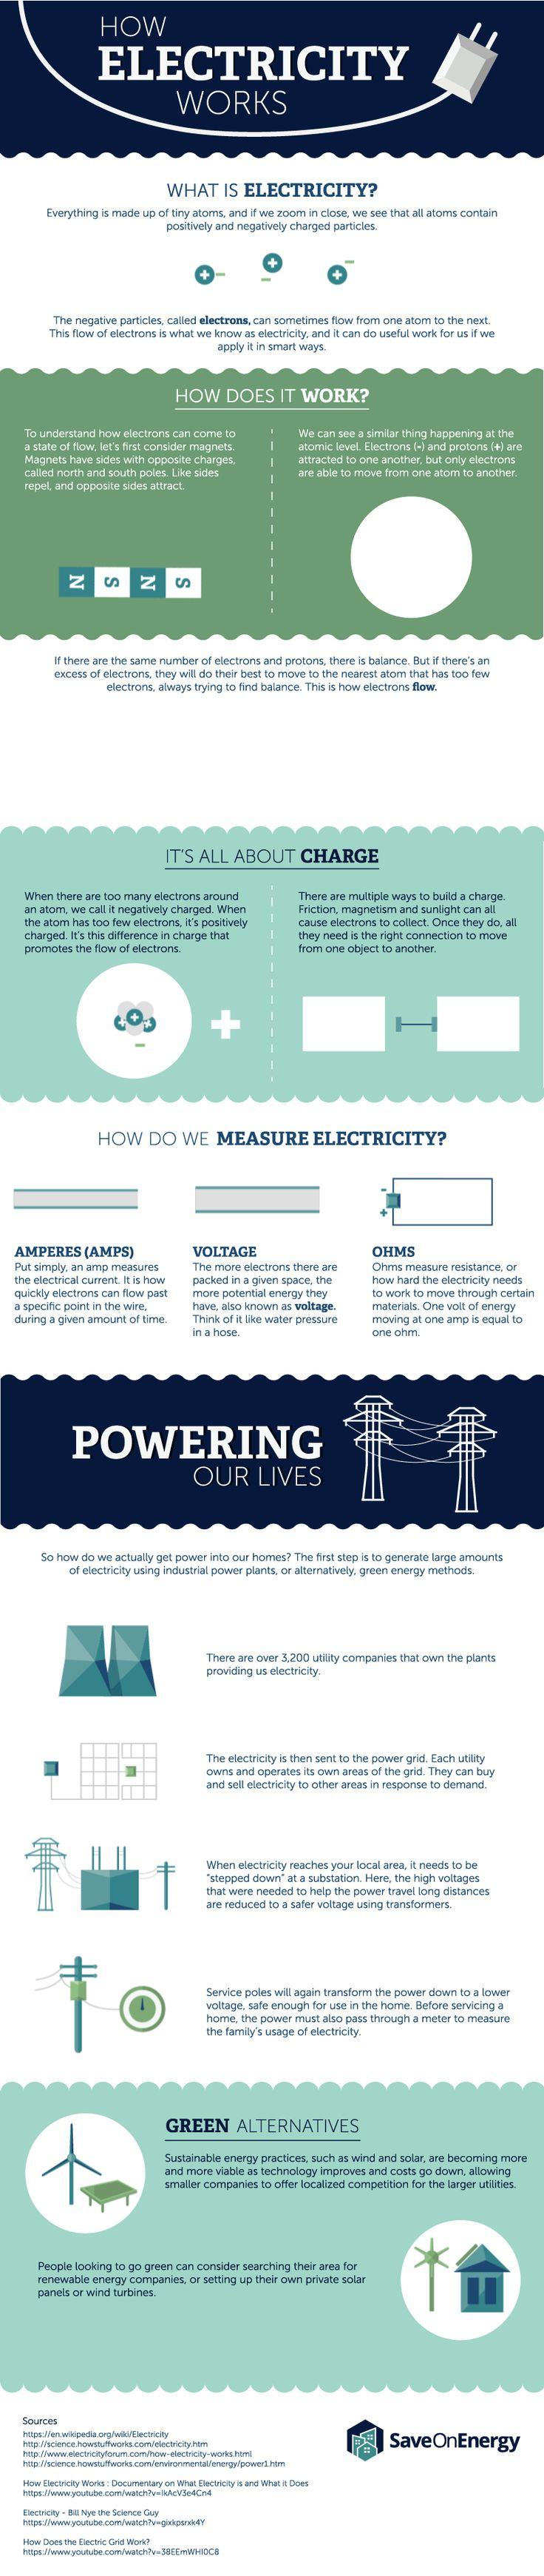 How Electricity Works #infographic #Electricity #Energy